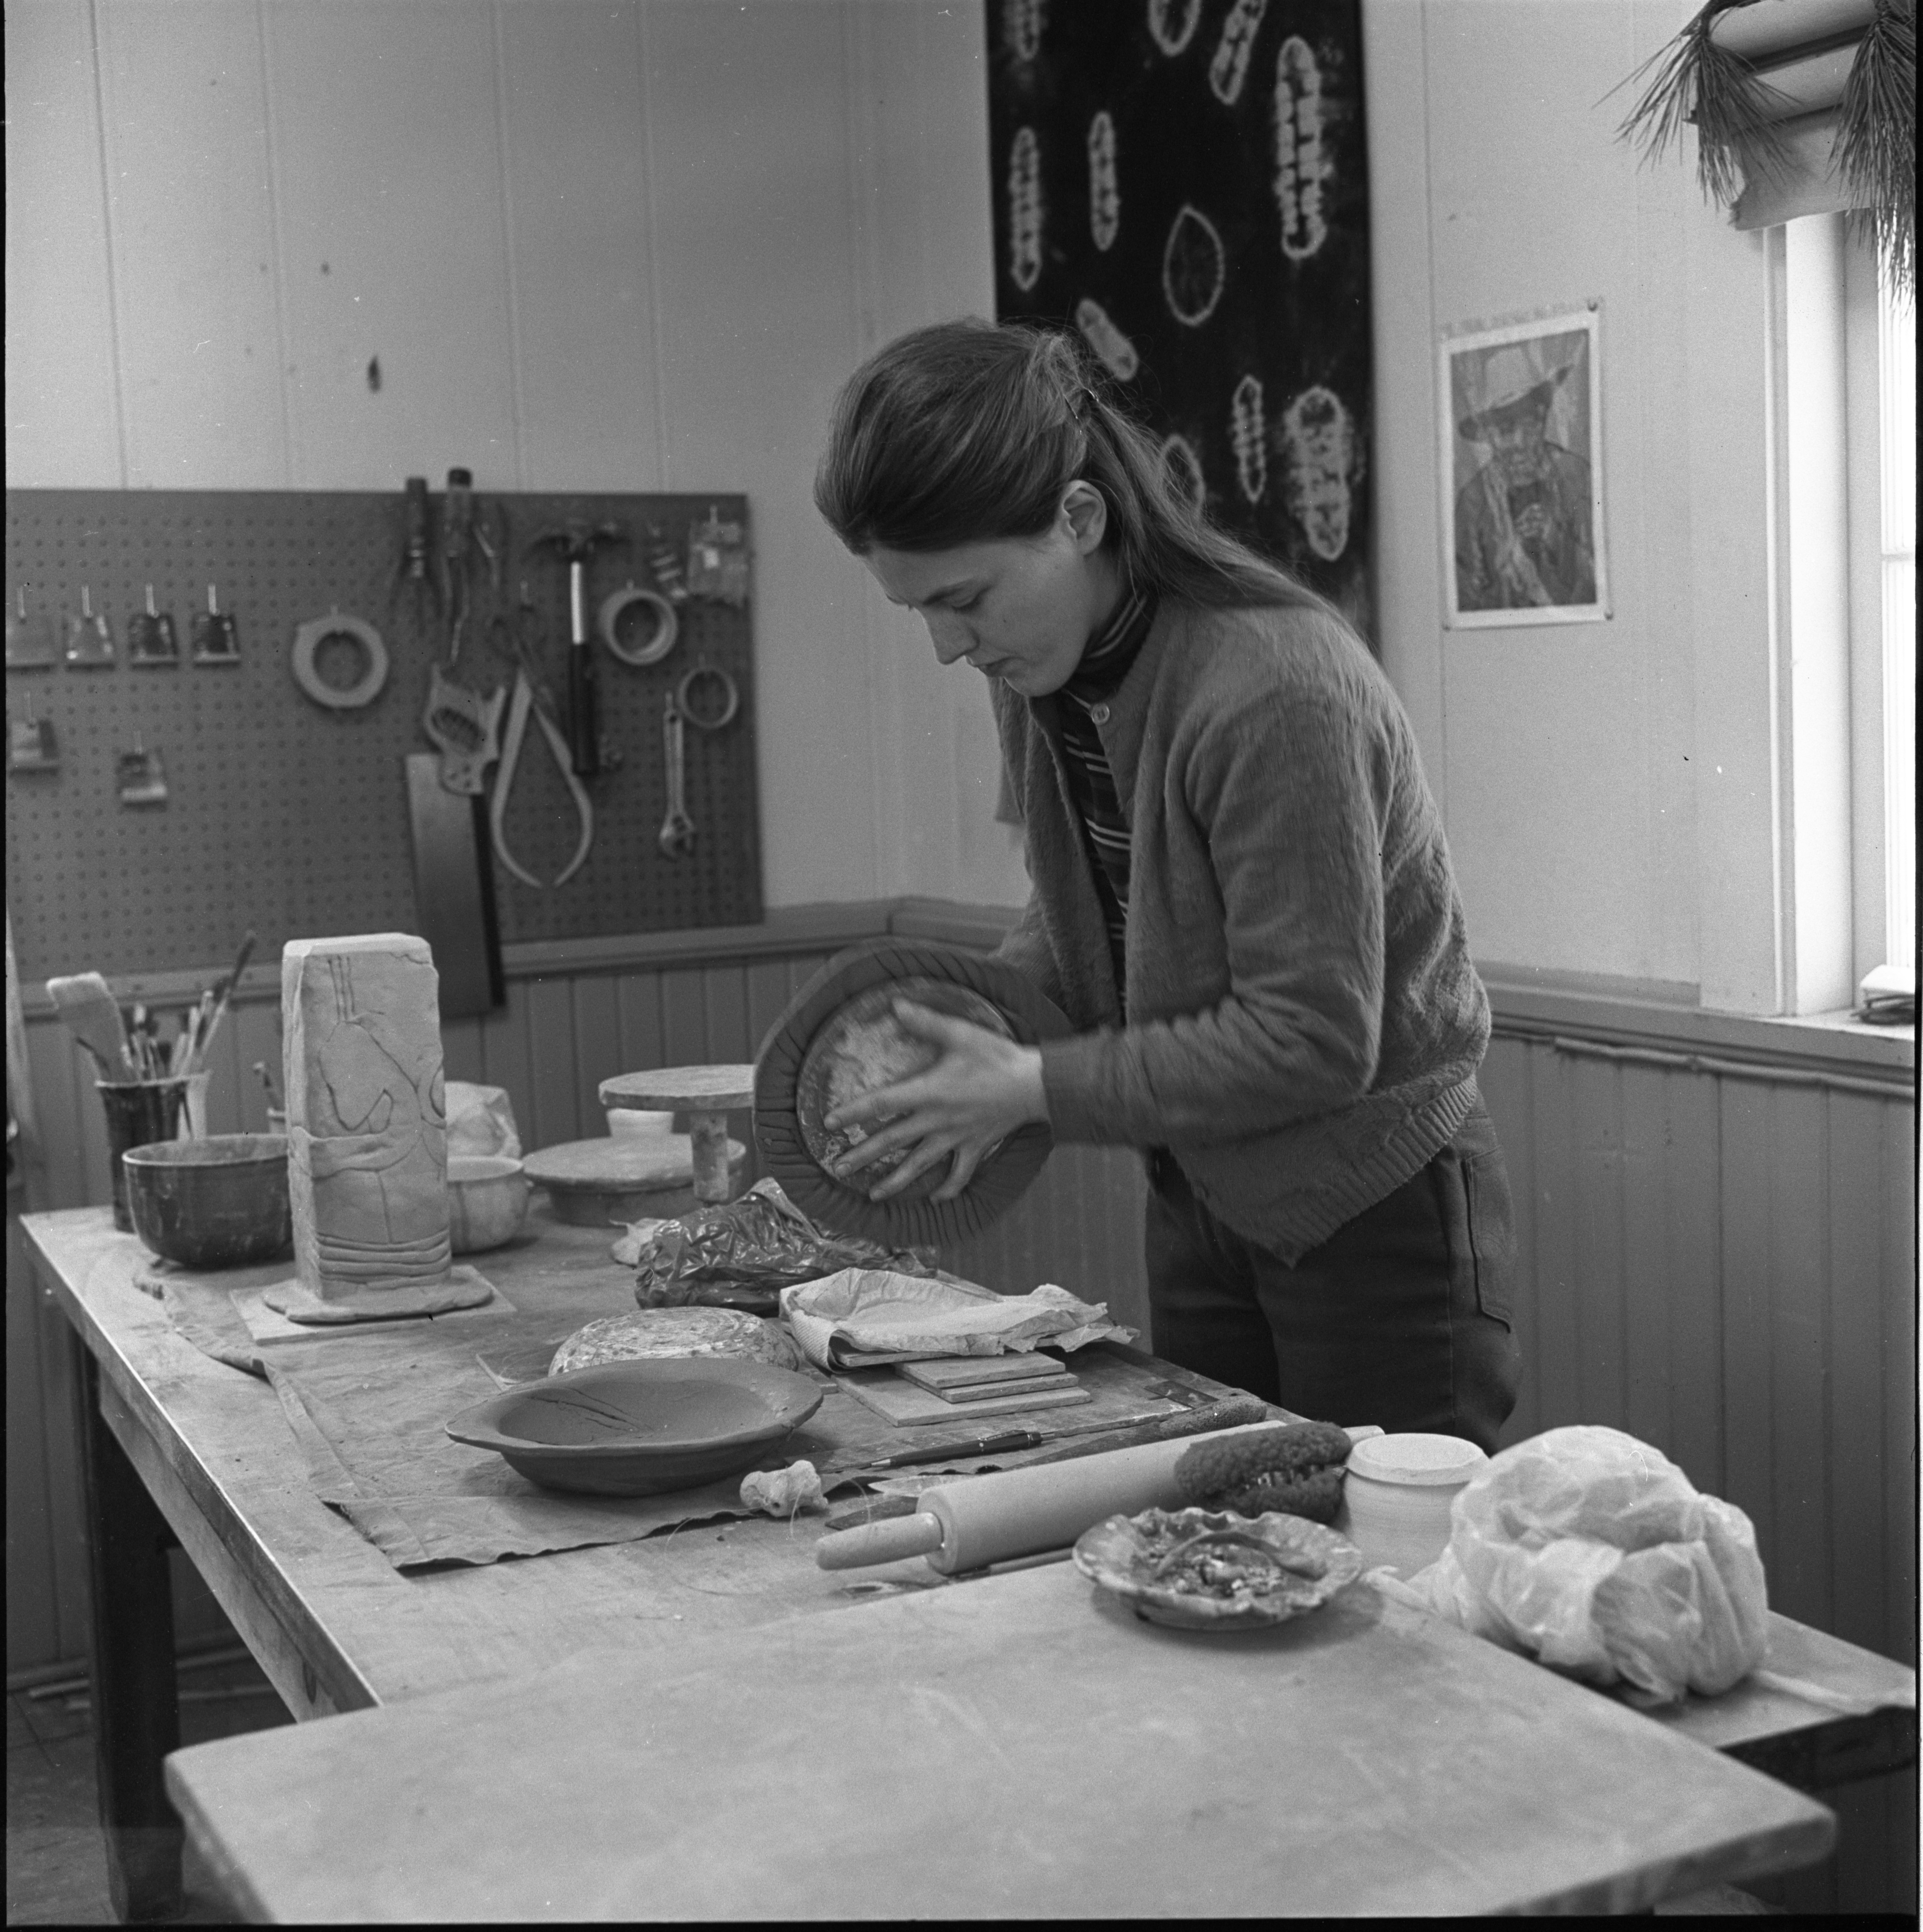 Linda Moody Works On A Project In The Schoolhouse Pottery Studio, December 1969 image